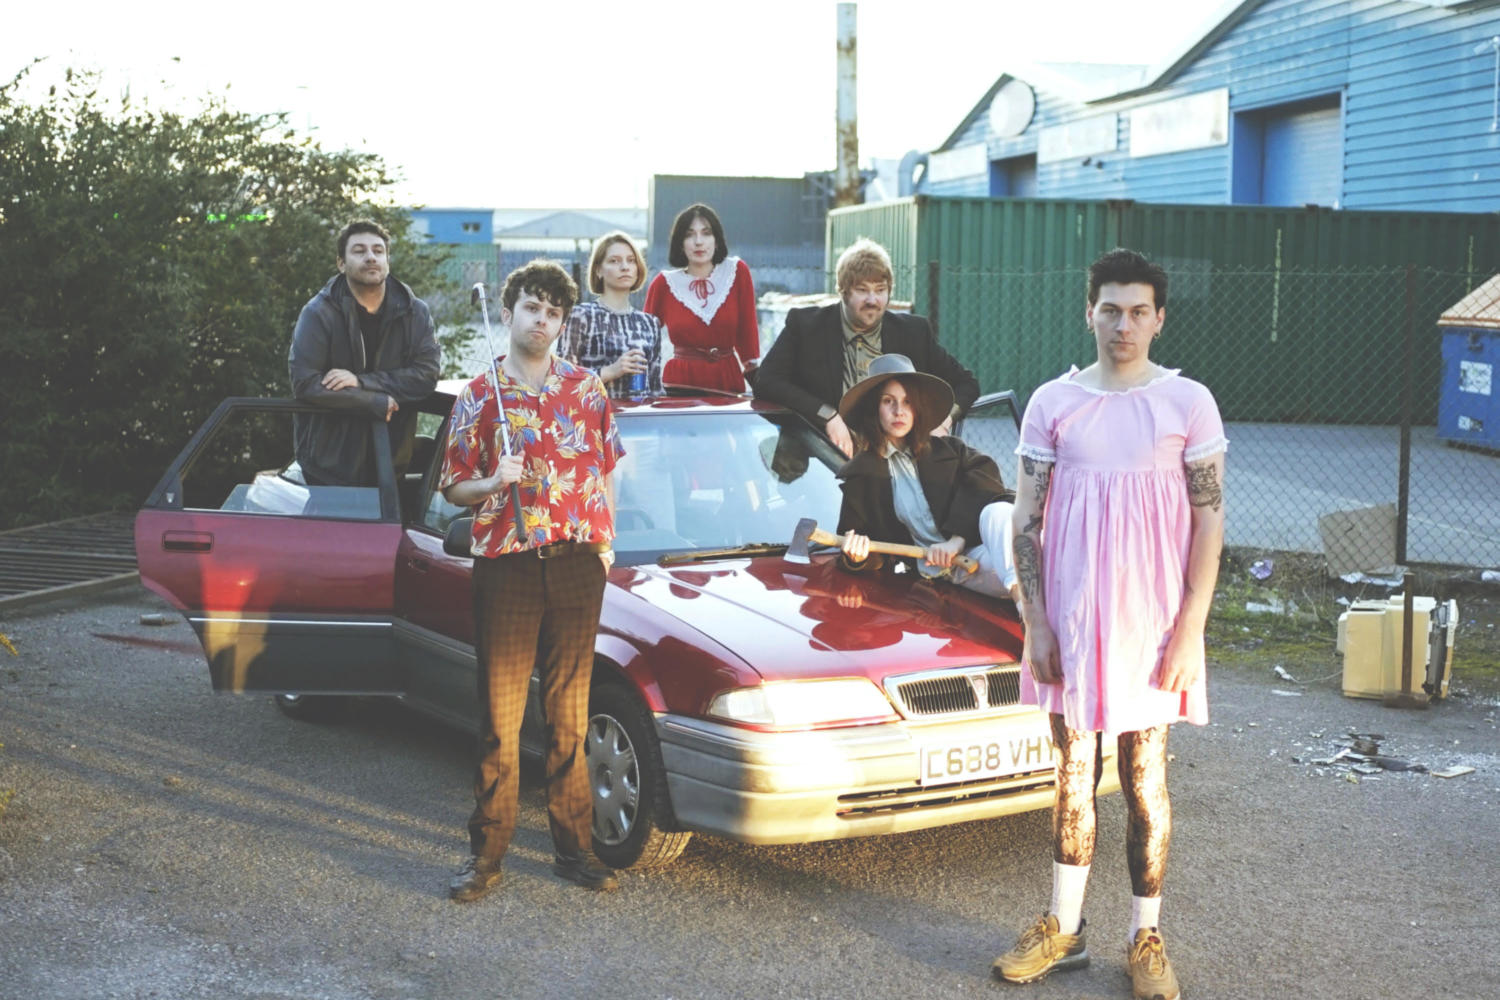 Pet Shimmers release two new songs 'Snake Eats a Lady' and 'Live-In Atrocity'